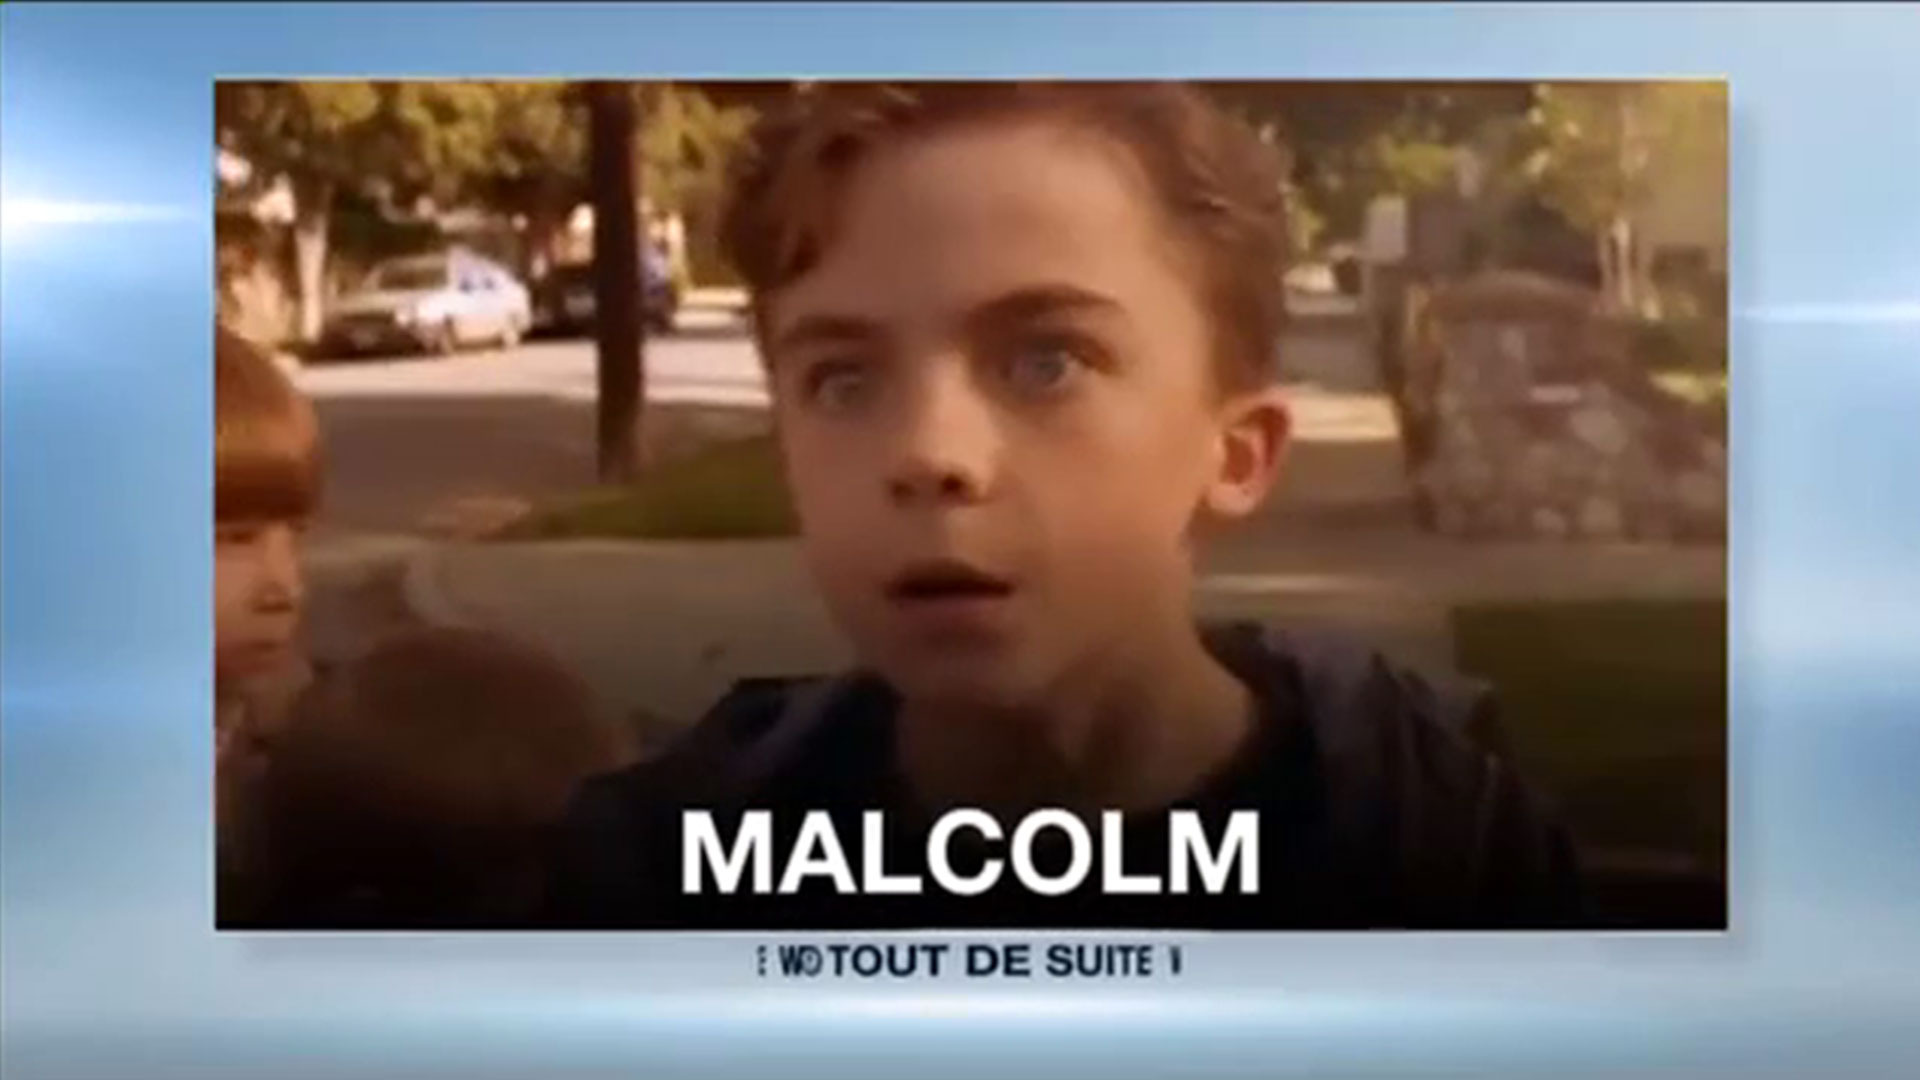 Coming-next <em>Malcolm</em> sur W9